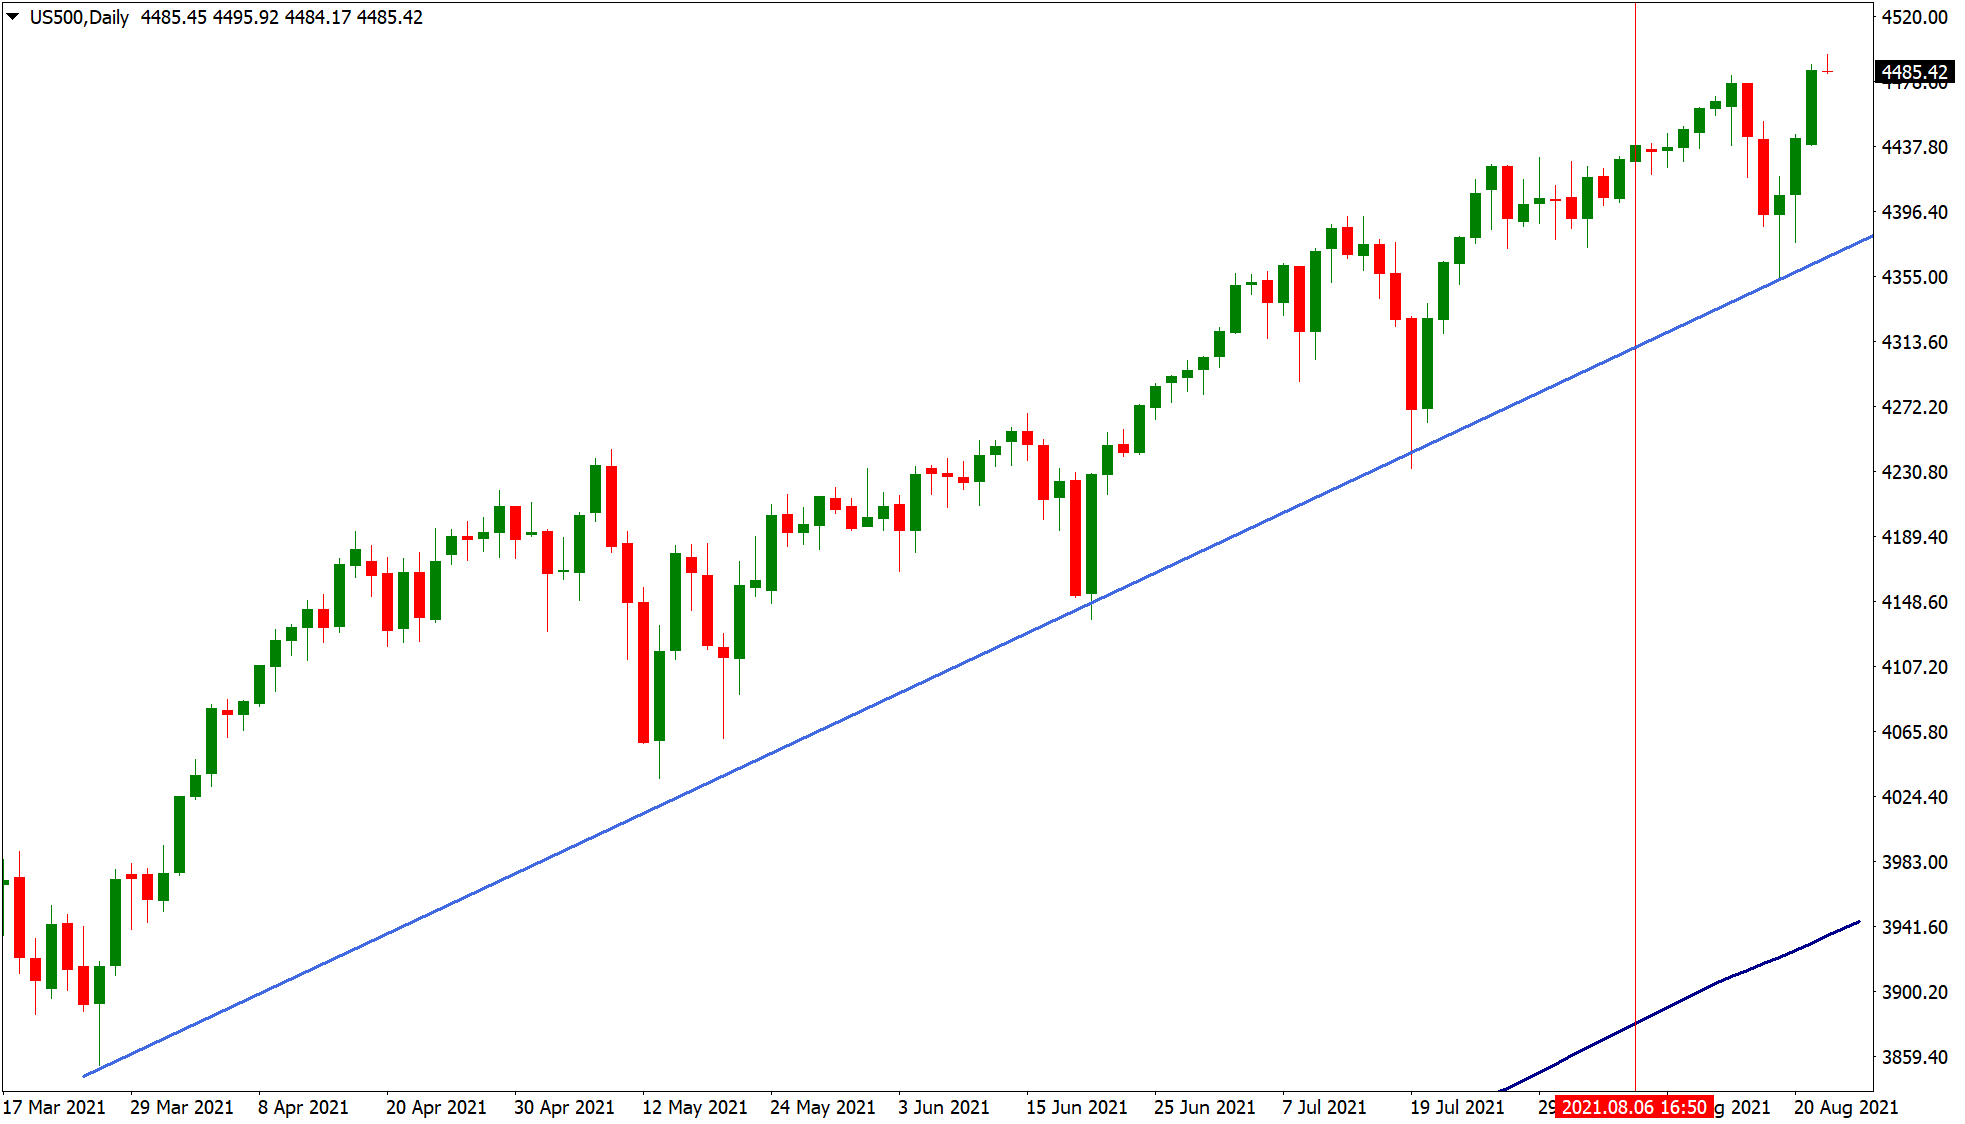 US500 retracement trading chart